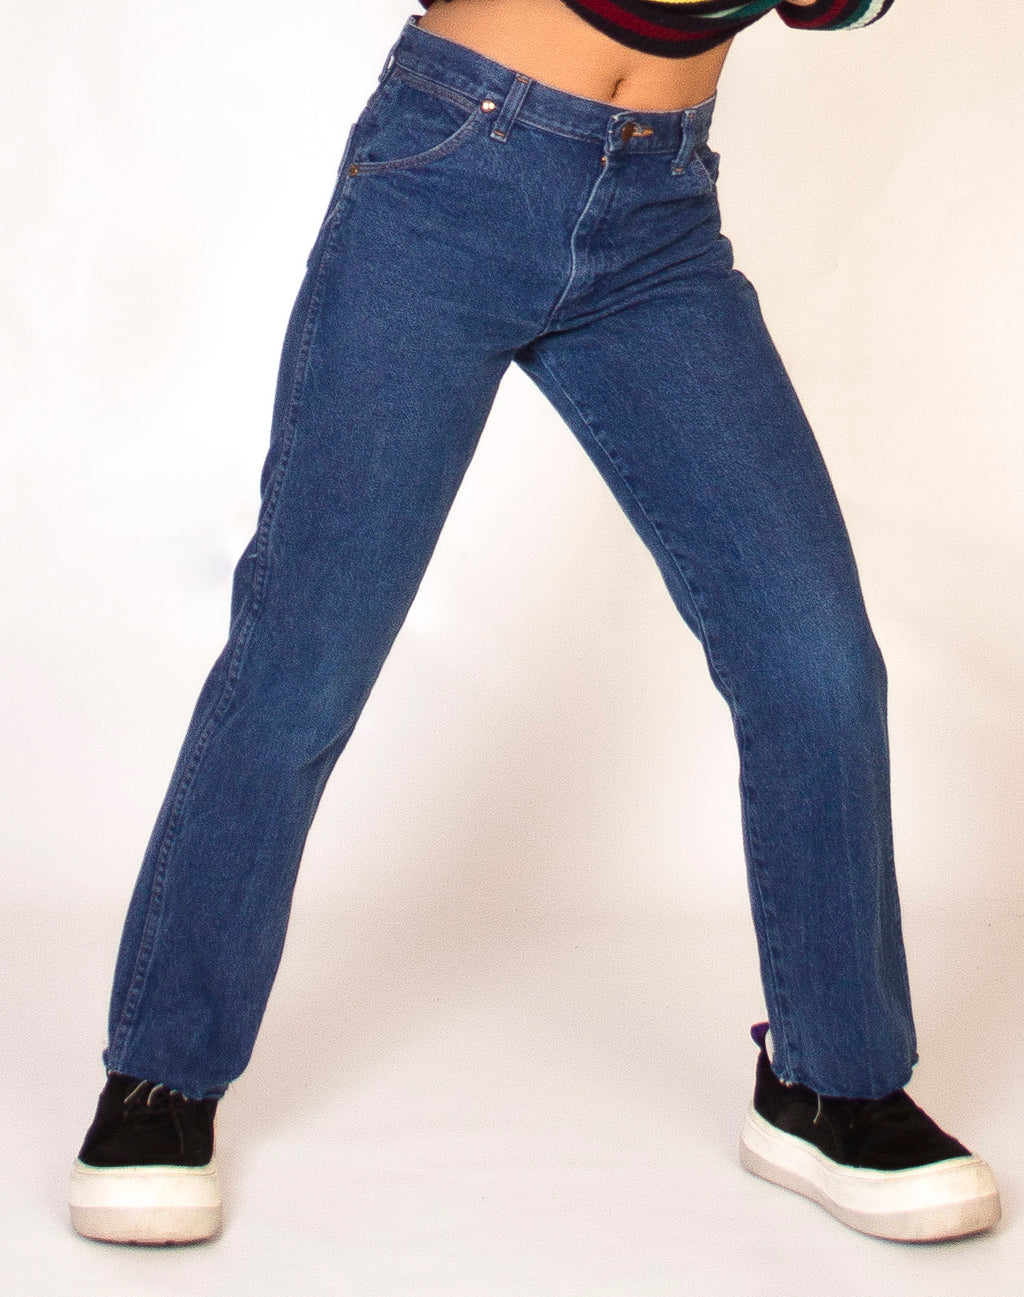 WRANGLER MID WASH DENIM JEANS